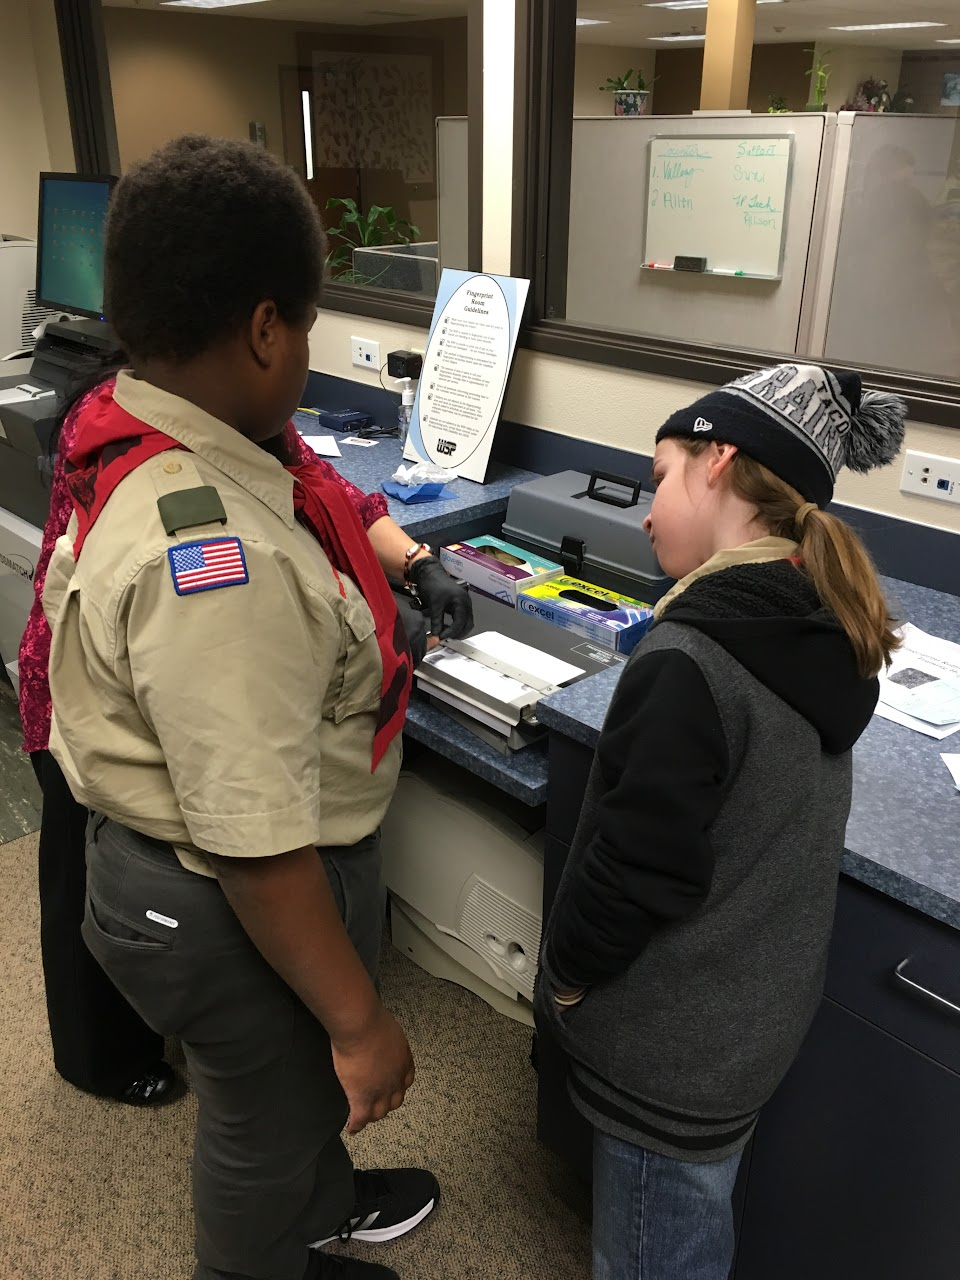 Fingerprinting Merit Badge - February 2016 - IMG_0878.JPG